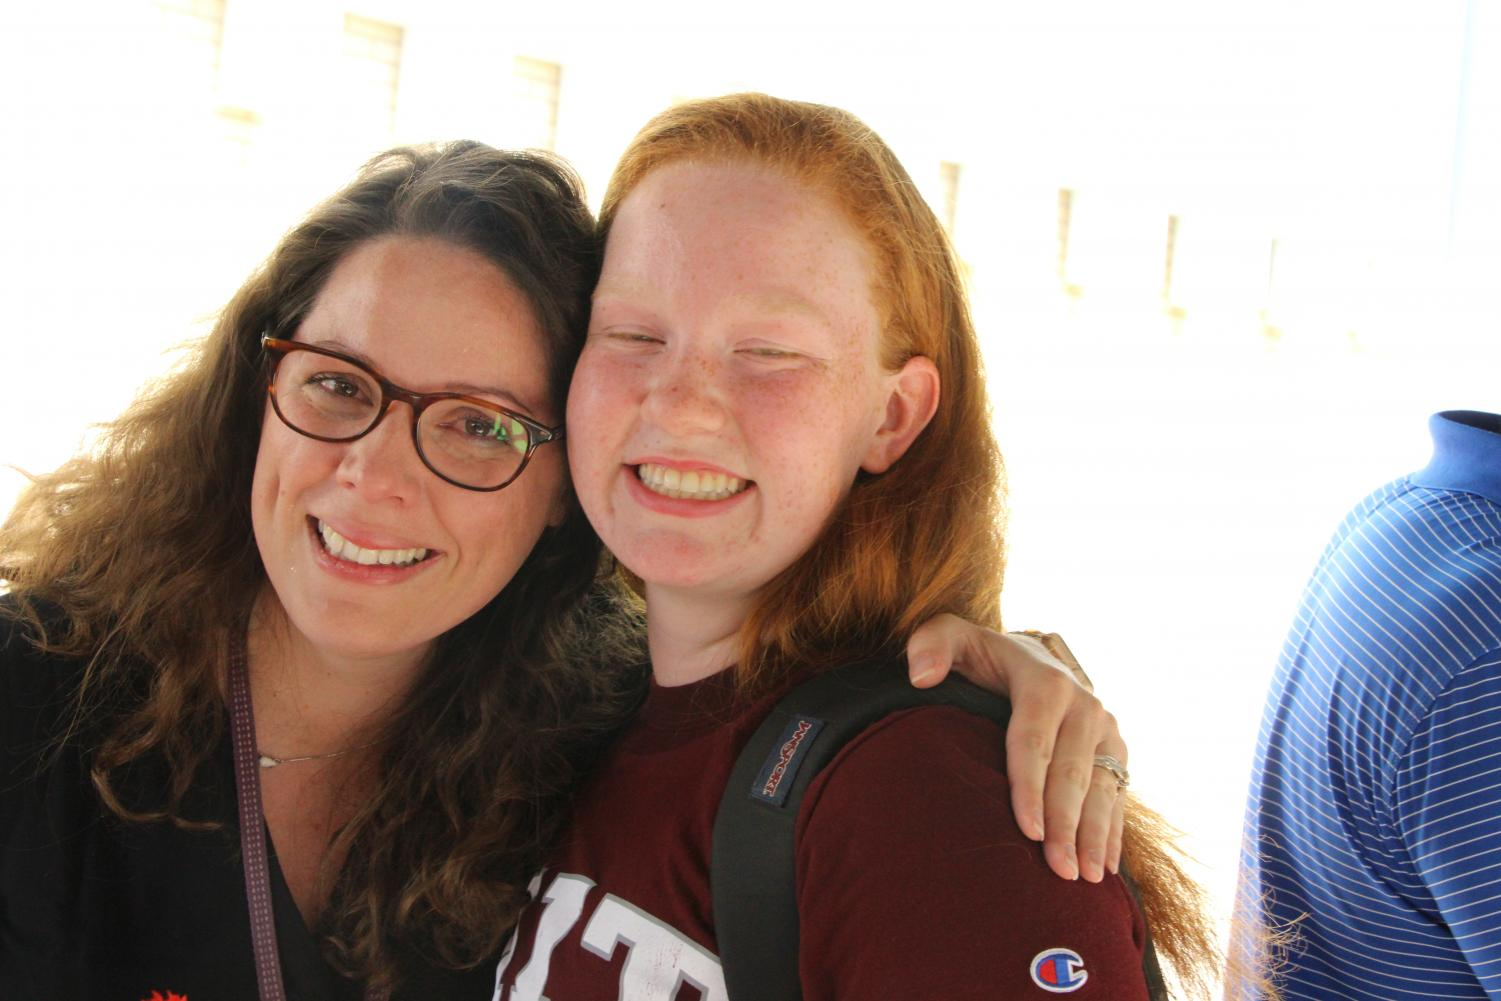 Ms.Loges++and+Carly+Long+shed+tears+and+a+long+hug+as+they+say+goodbye.